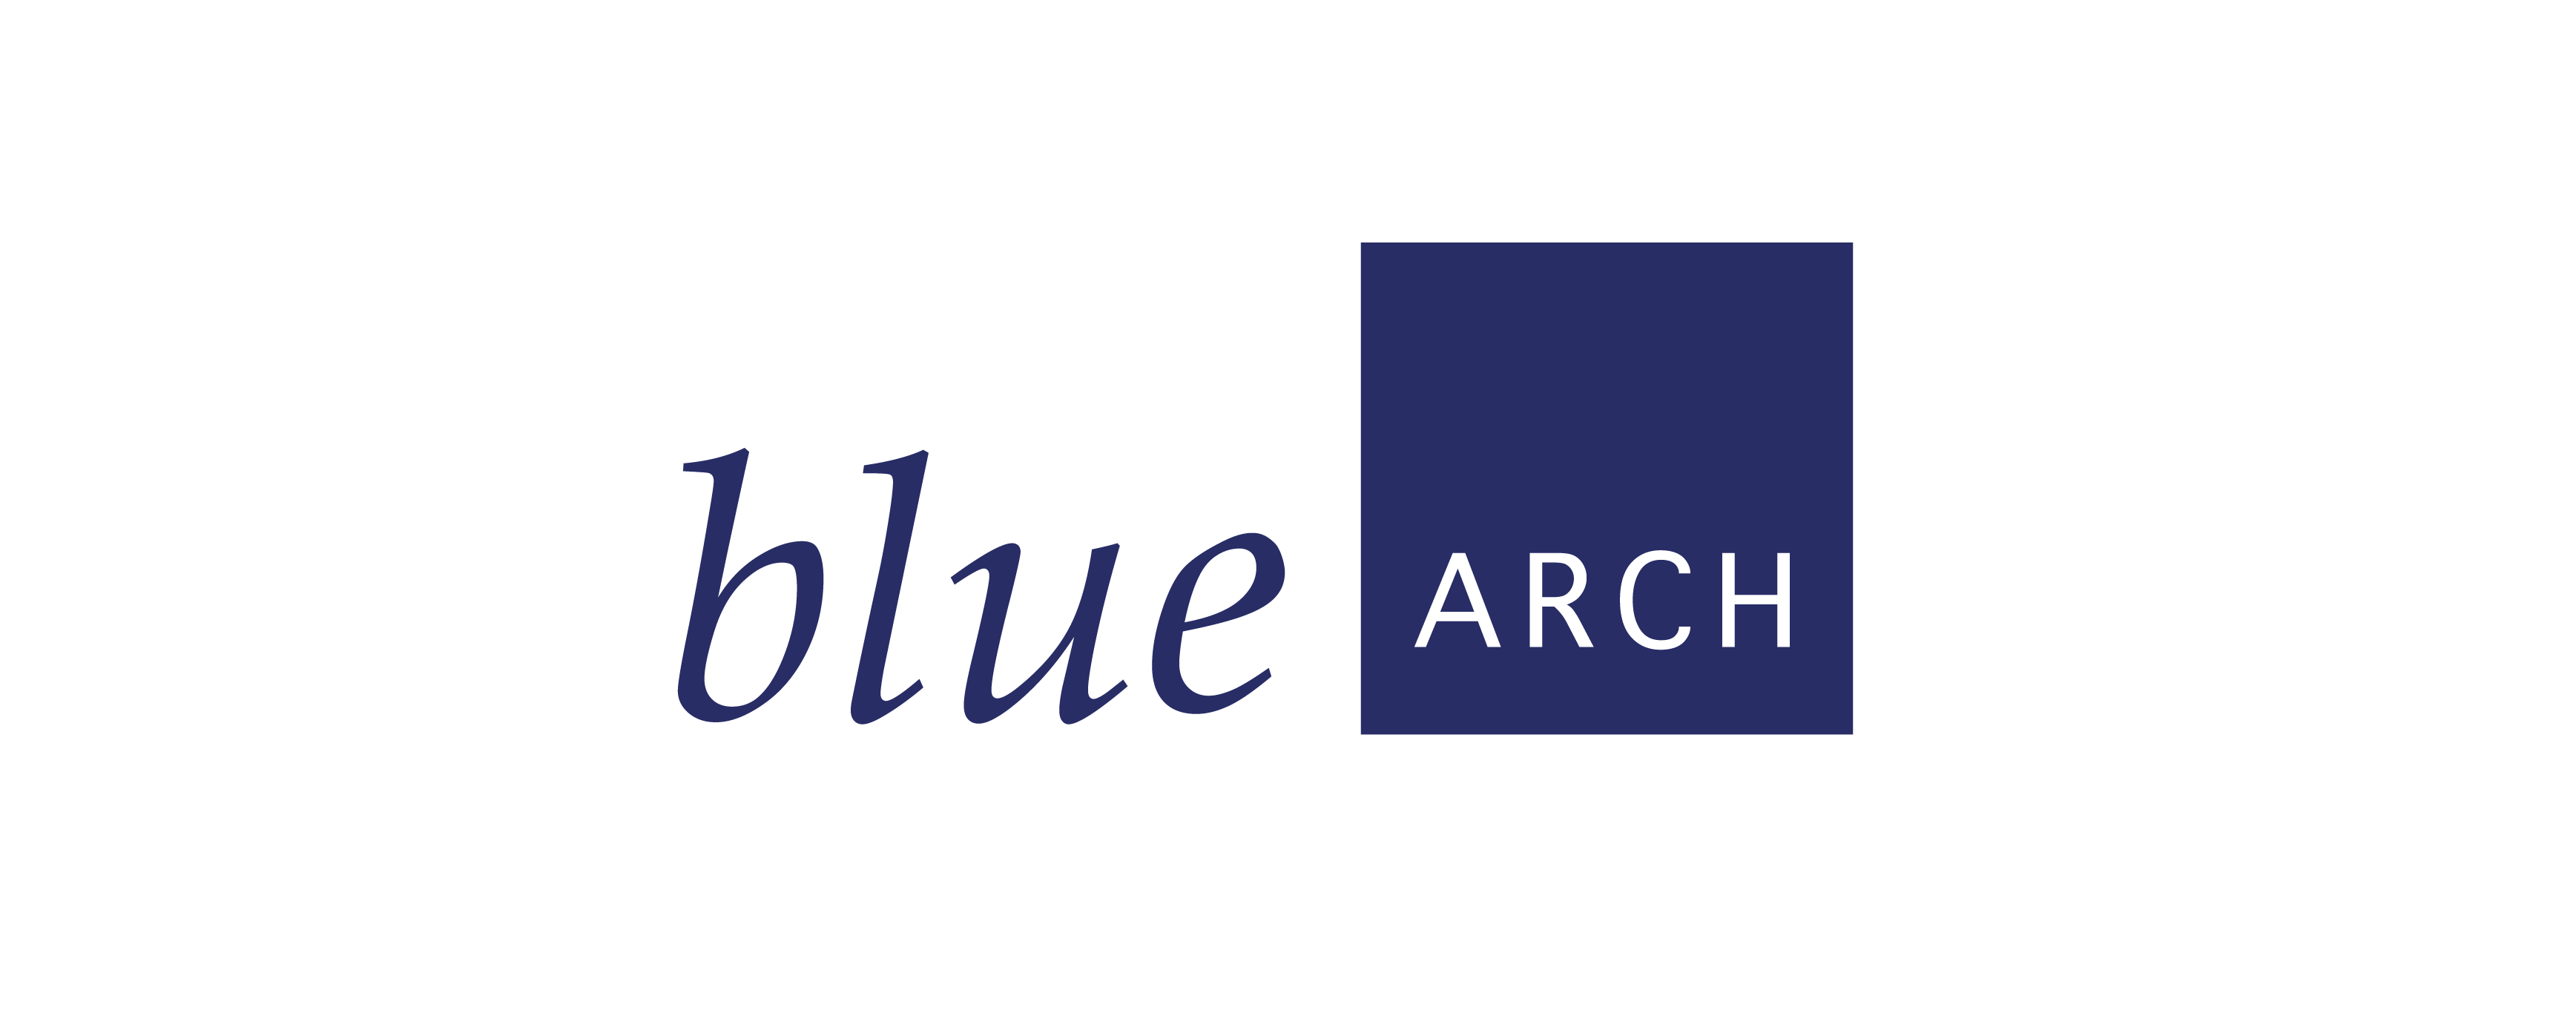 blueArch